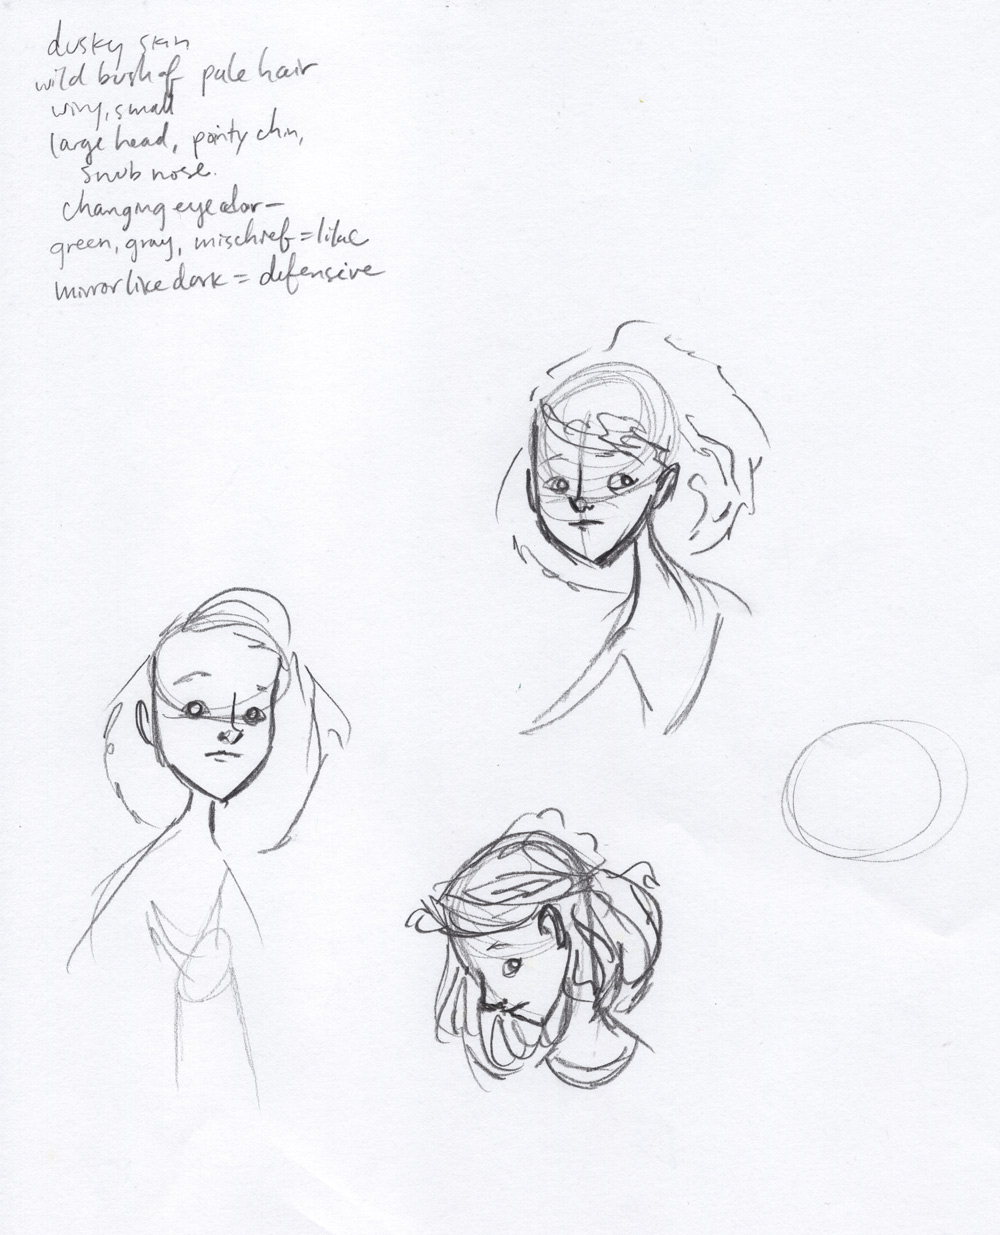 Some very rough sketches to start getting a feel for Saaski. I took some notes at the top from the book, especially about her eyes. I wanted her to be looking directly out at us and for there to be an emotional connection there. Having characters look straight at you isn't something I'm good at, so this was a good opportunity to practice that.